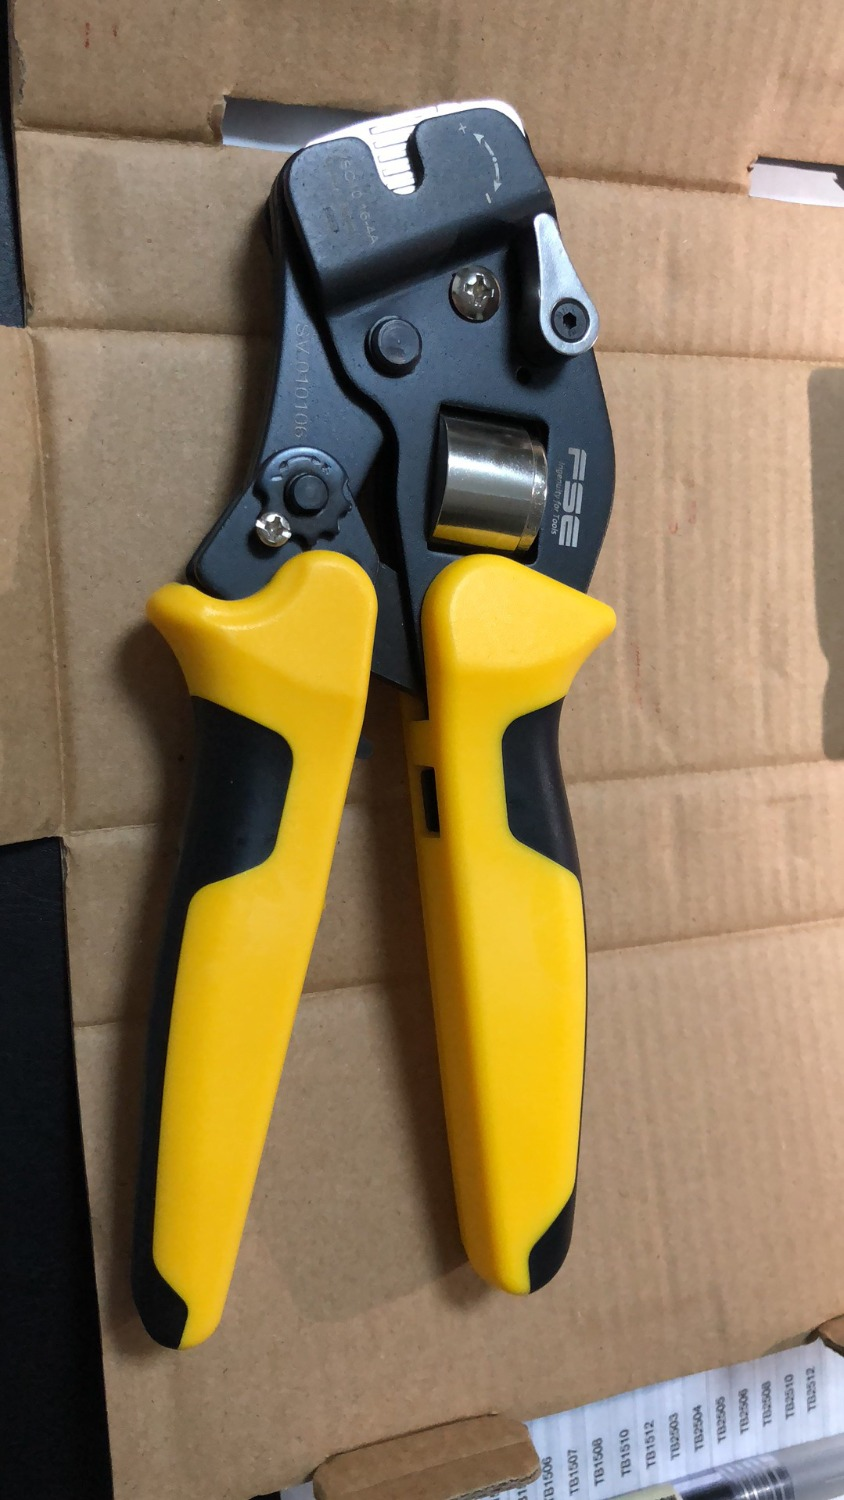 1PCS HSC10 16-4A 23-5 AWG Suyep Mini-Type Self-Adjustable Crimping Plier 1pcs hsc8 16 4 11 5 awg suyep mini type self adjustable crimping plier application for tubular bare terminals and pre insulated